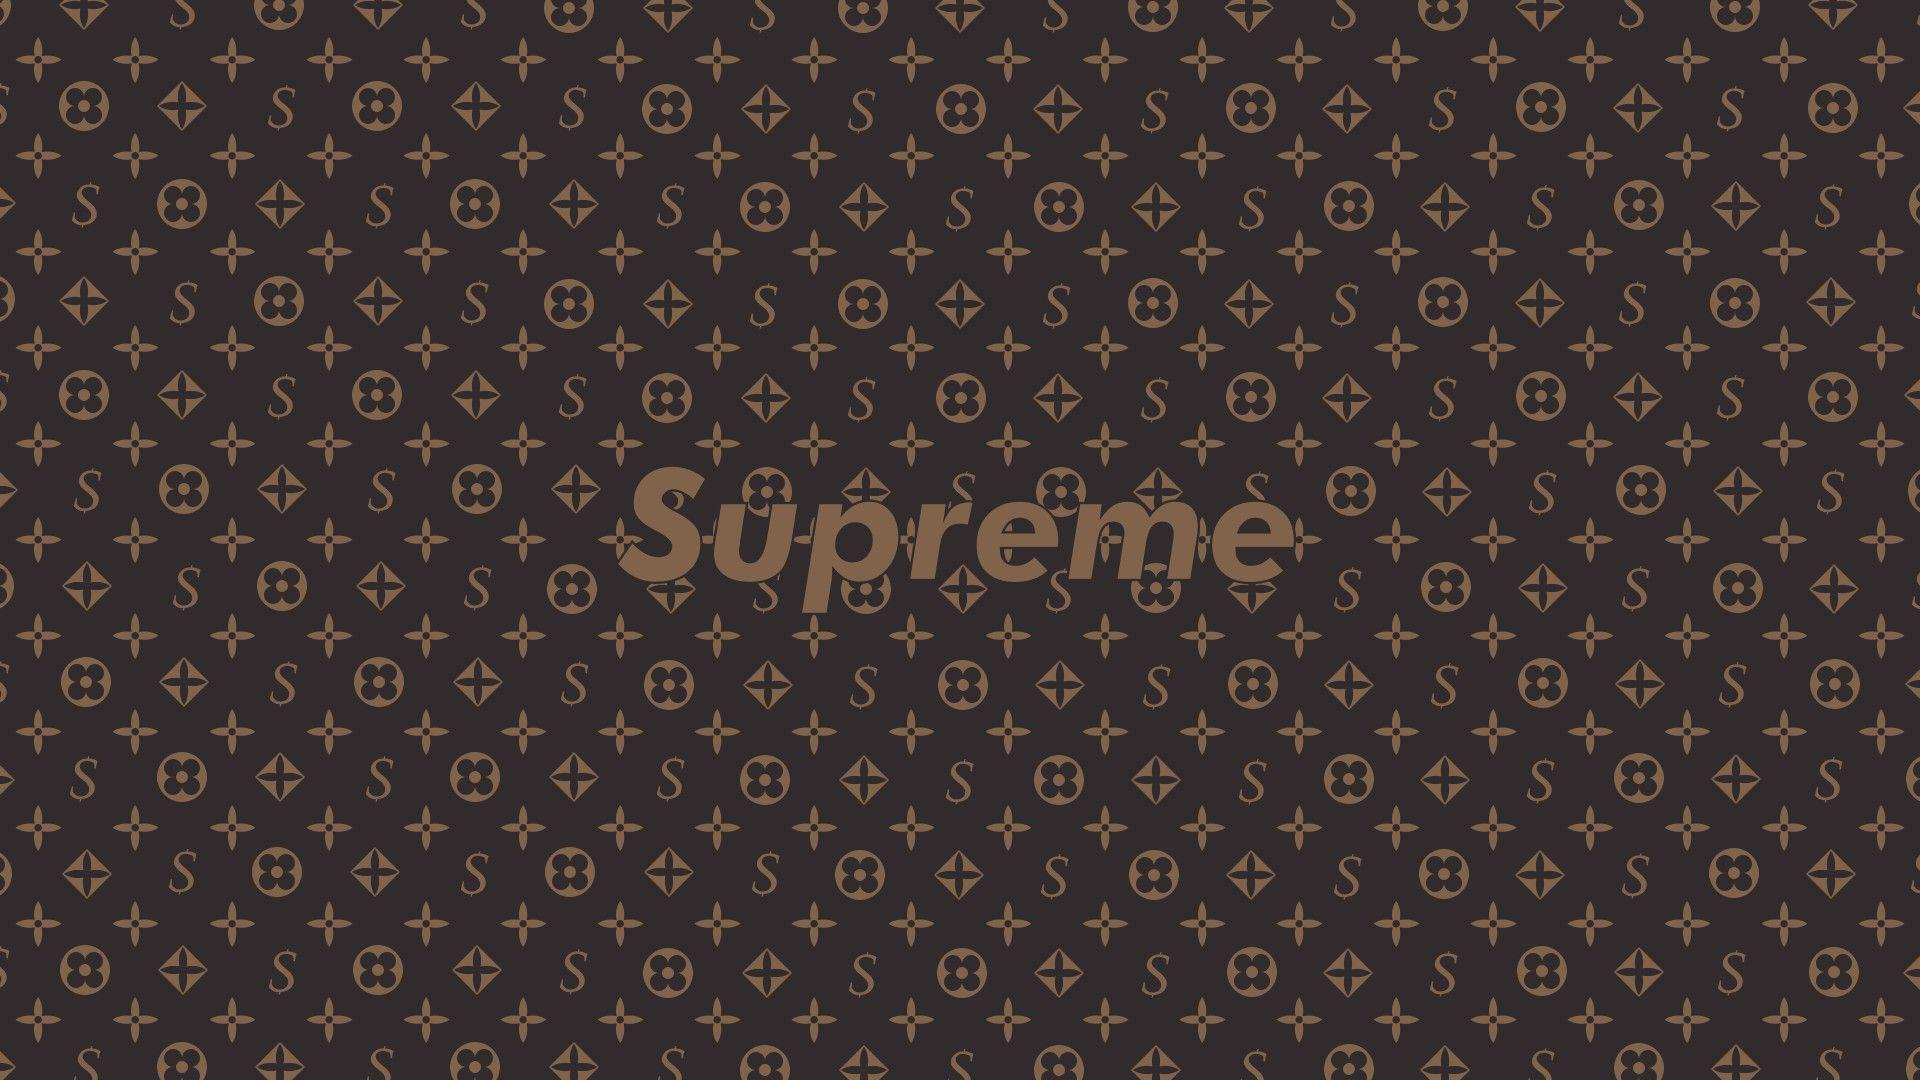 Louis Vuitton, #supreme | Wallpaper No. 585410 - wallhaven.cc